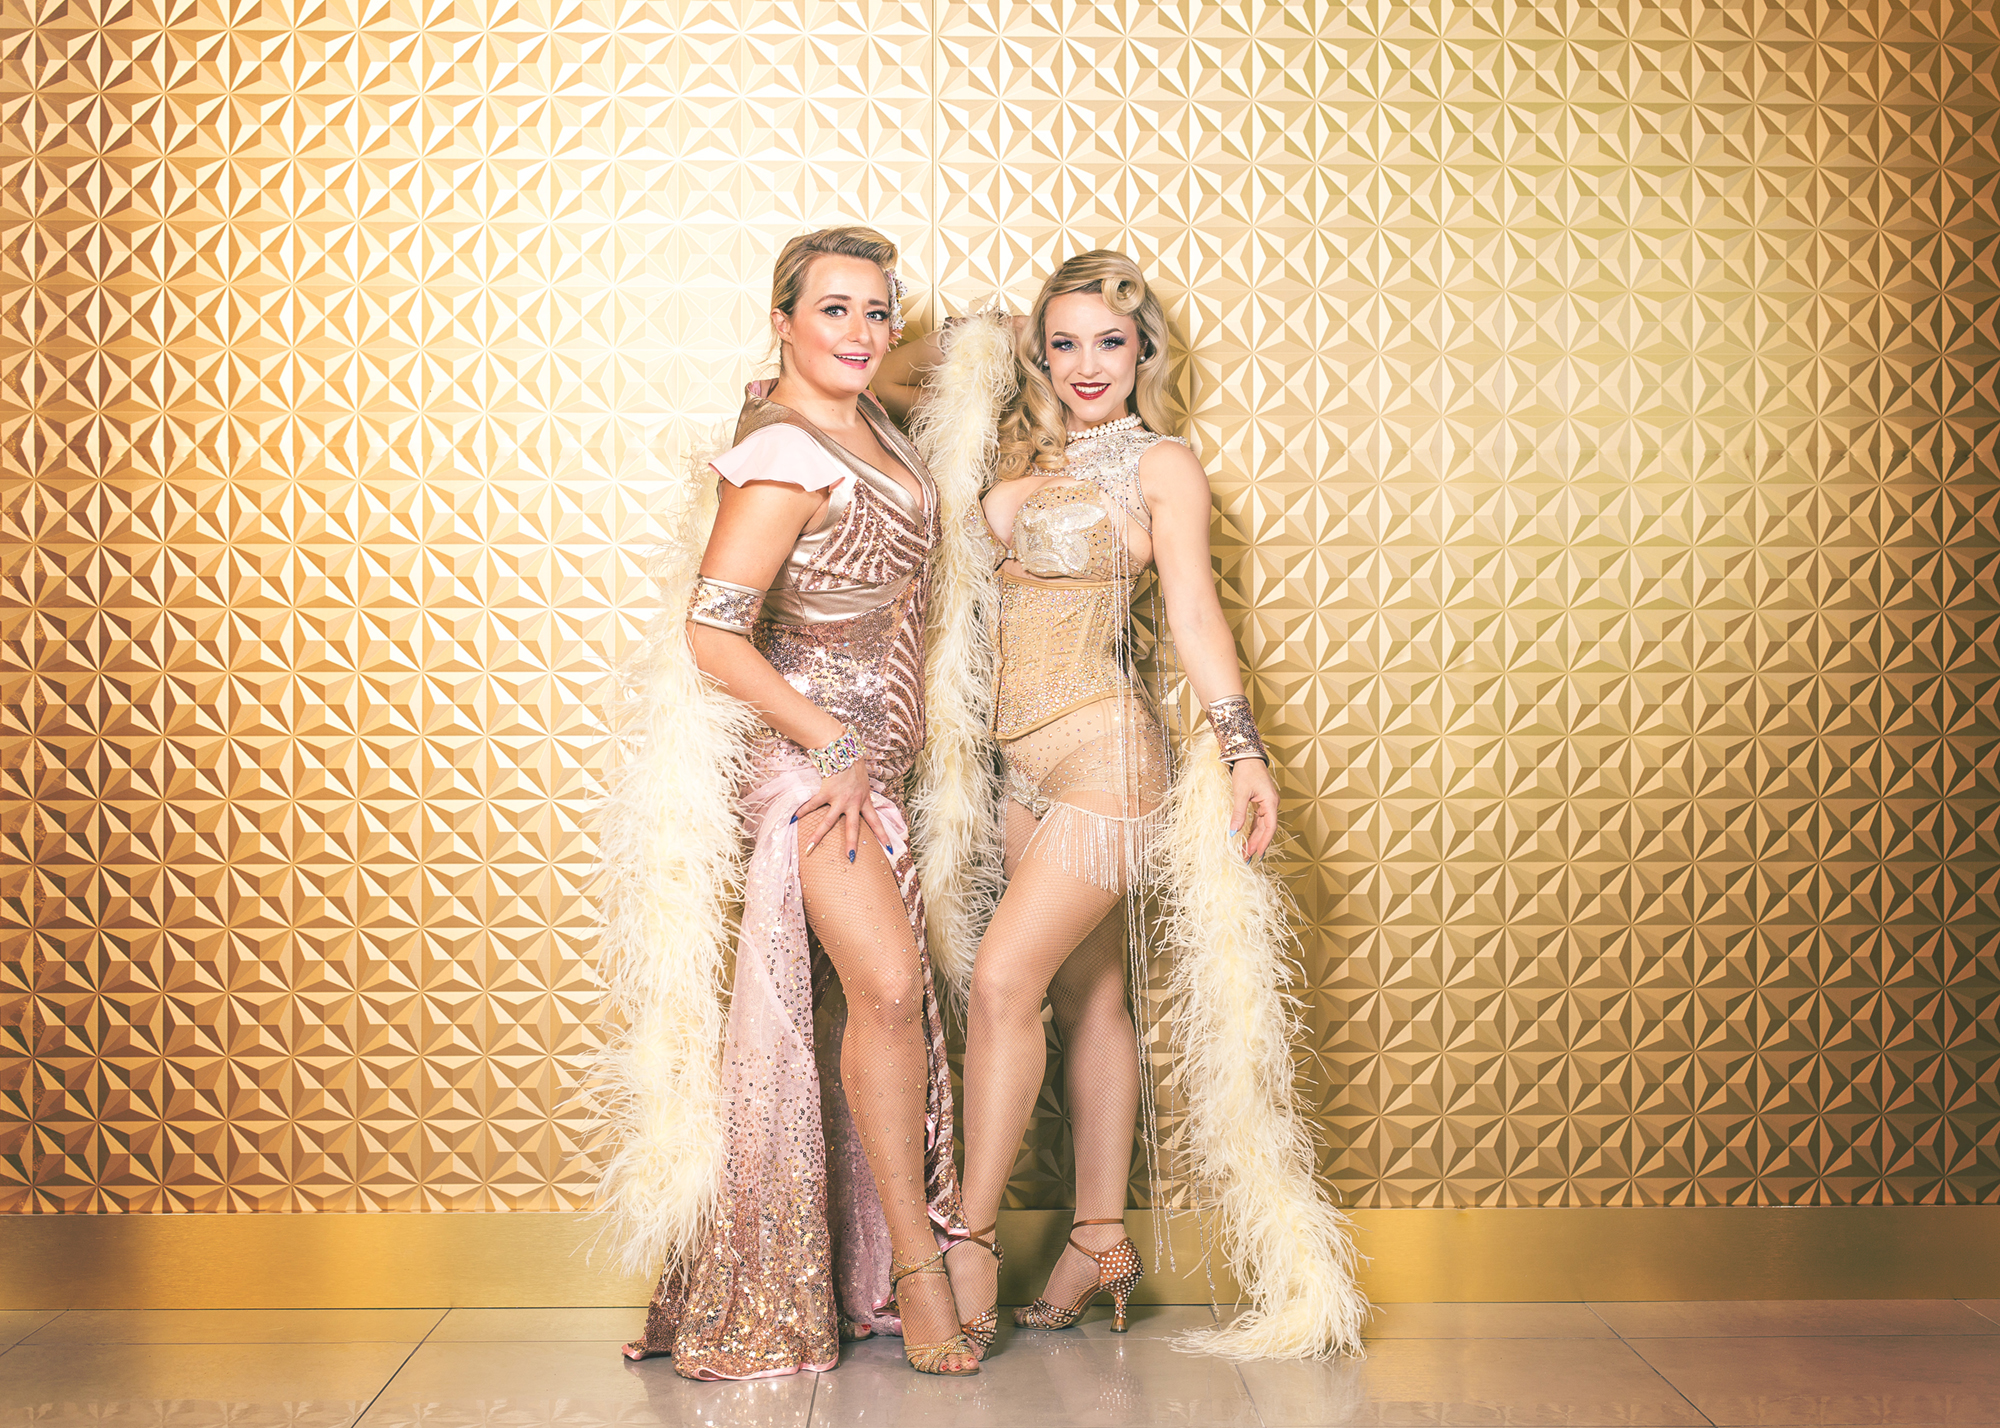 Letabby Lexington (left) & Violette Coquette (right) / Image by Vintage Photography, 2018